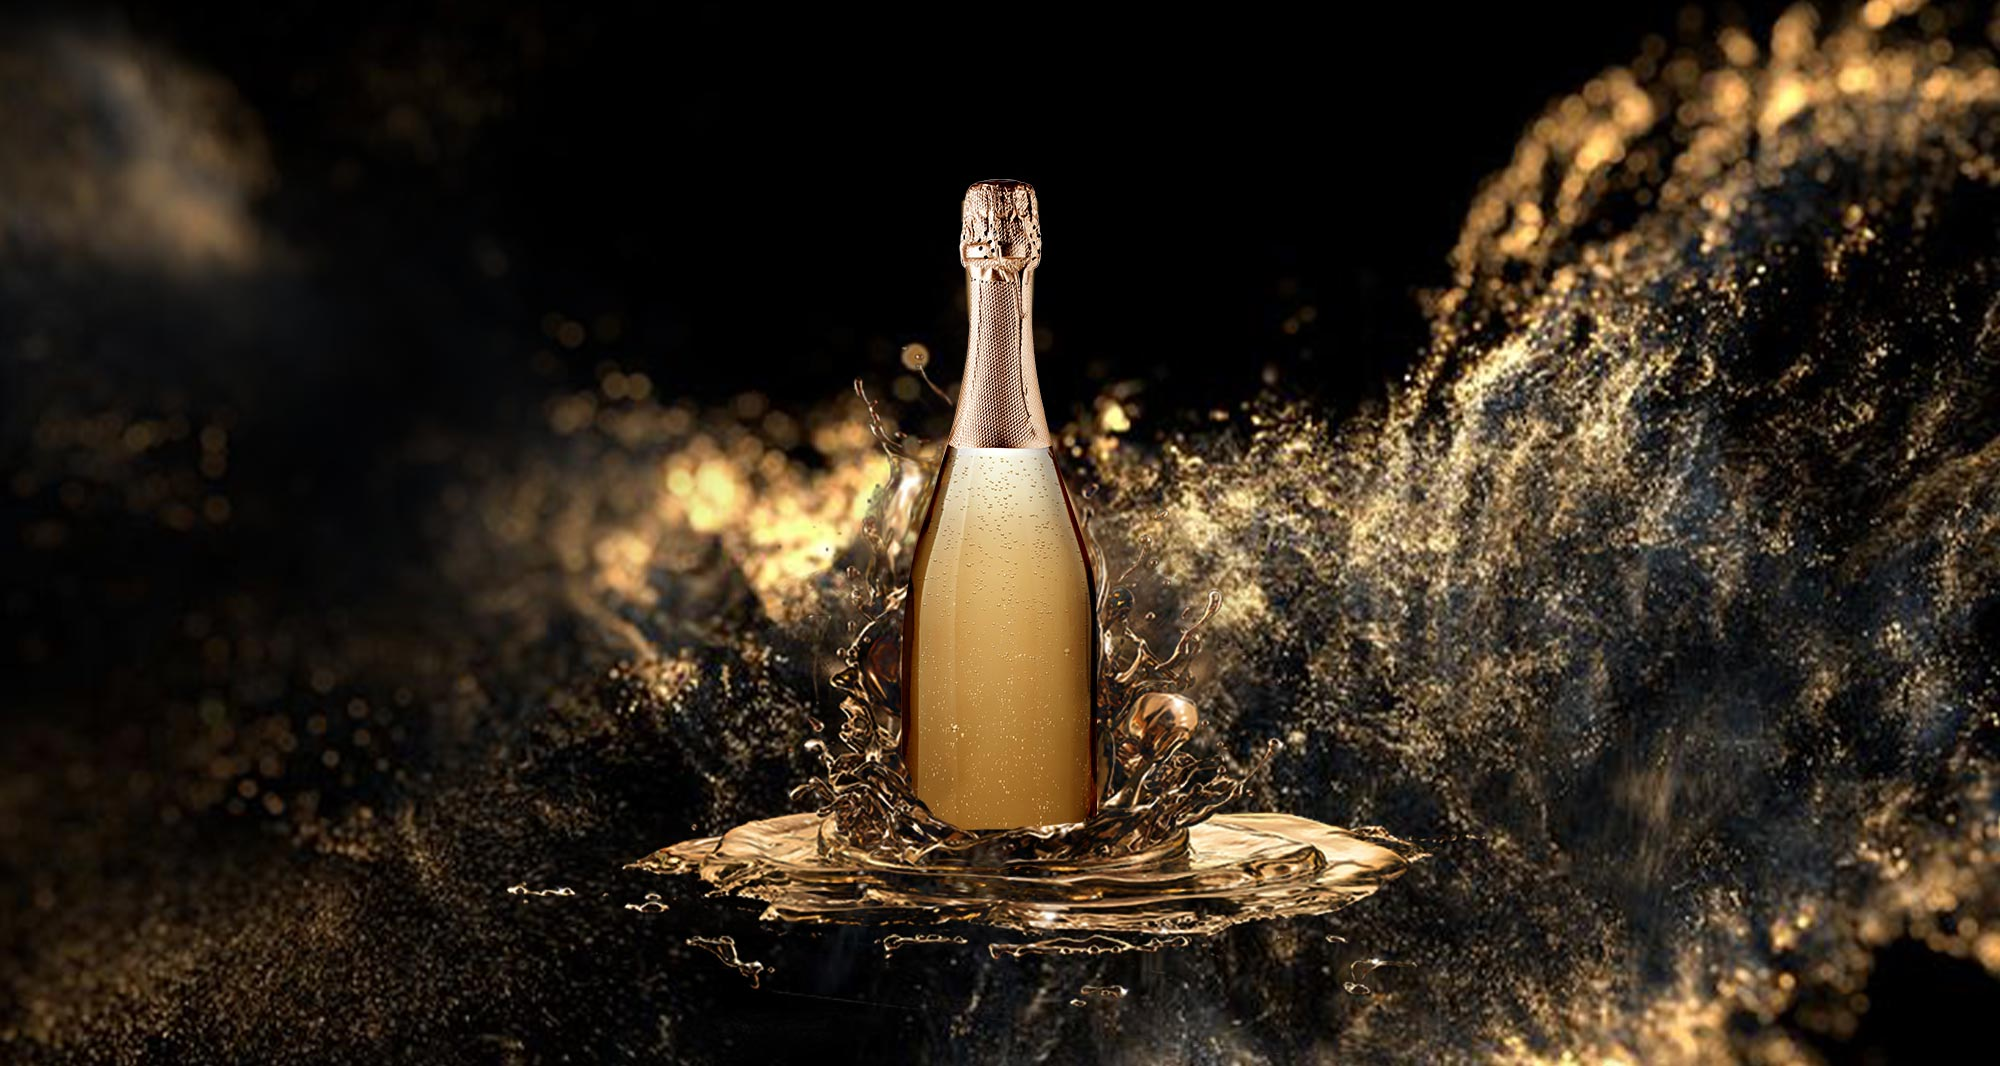 LET YOUR QUALITY SHINE WITH THE CRISTAL LINE FOR SPARKLING WINES